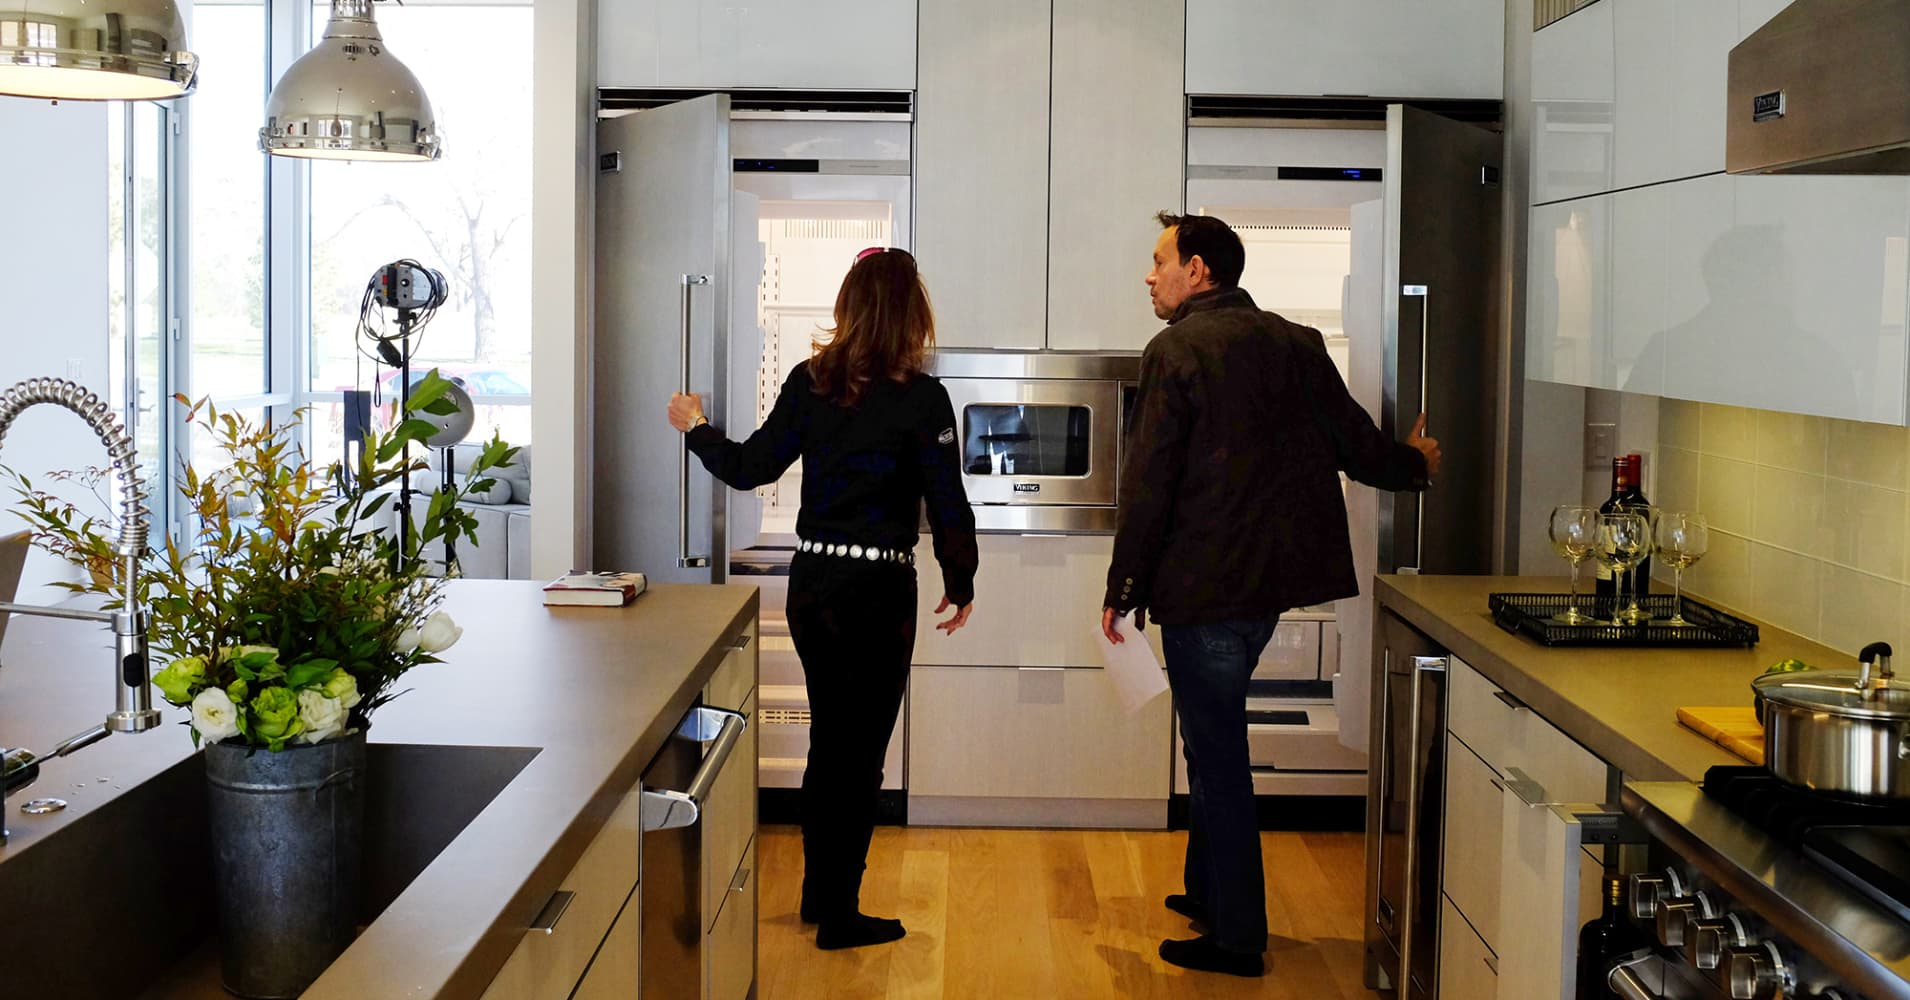 Home prices surge in February – even as mortgage rates rise 1